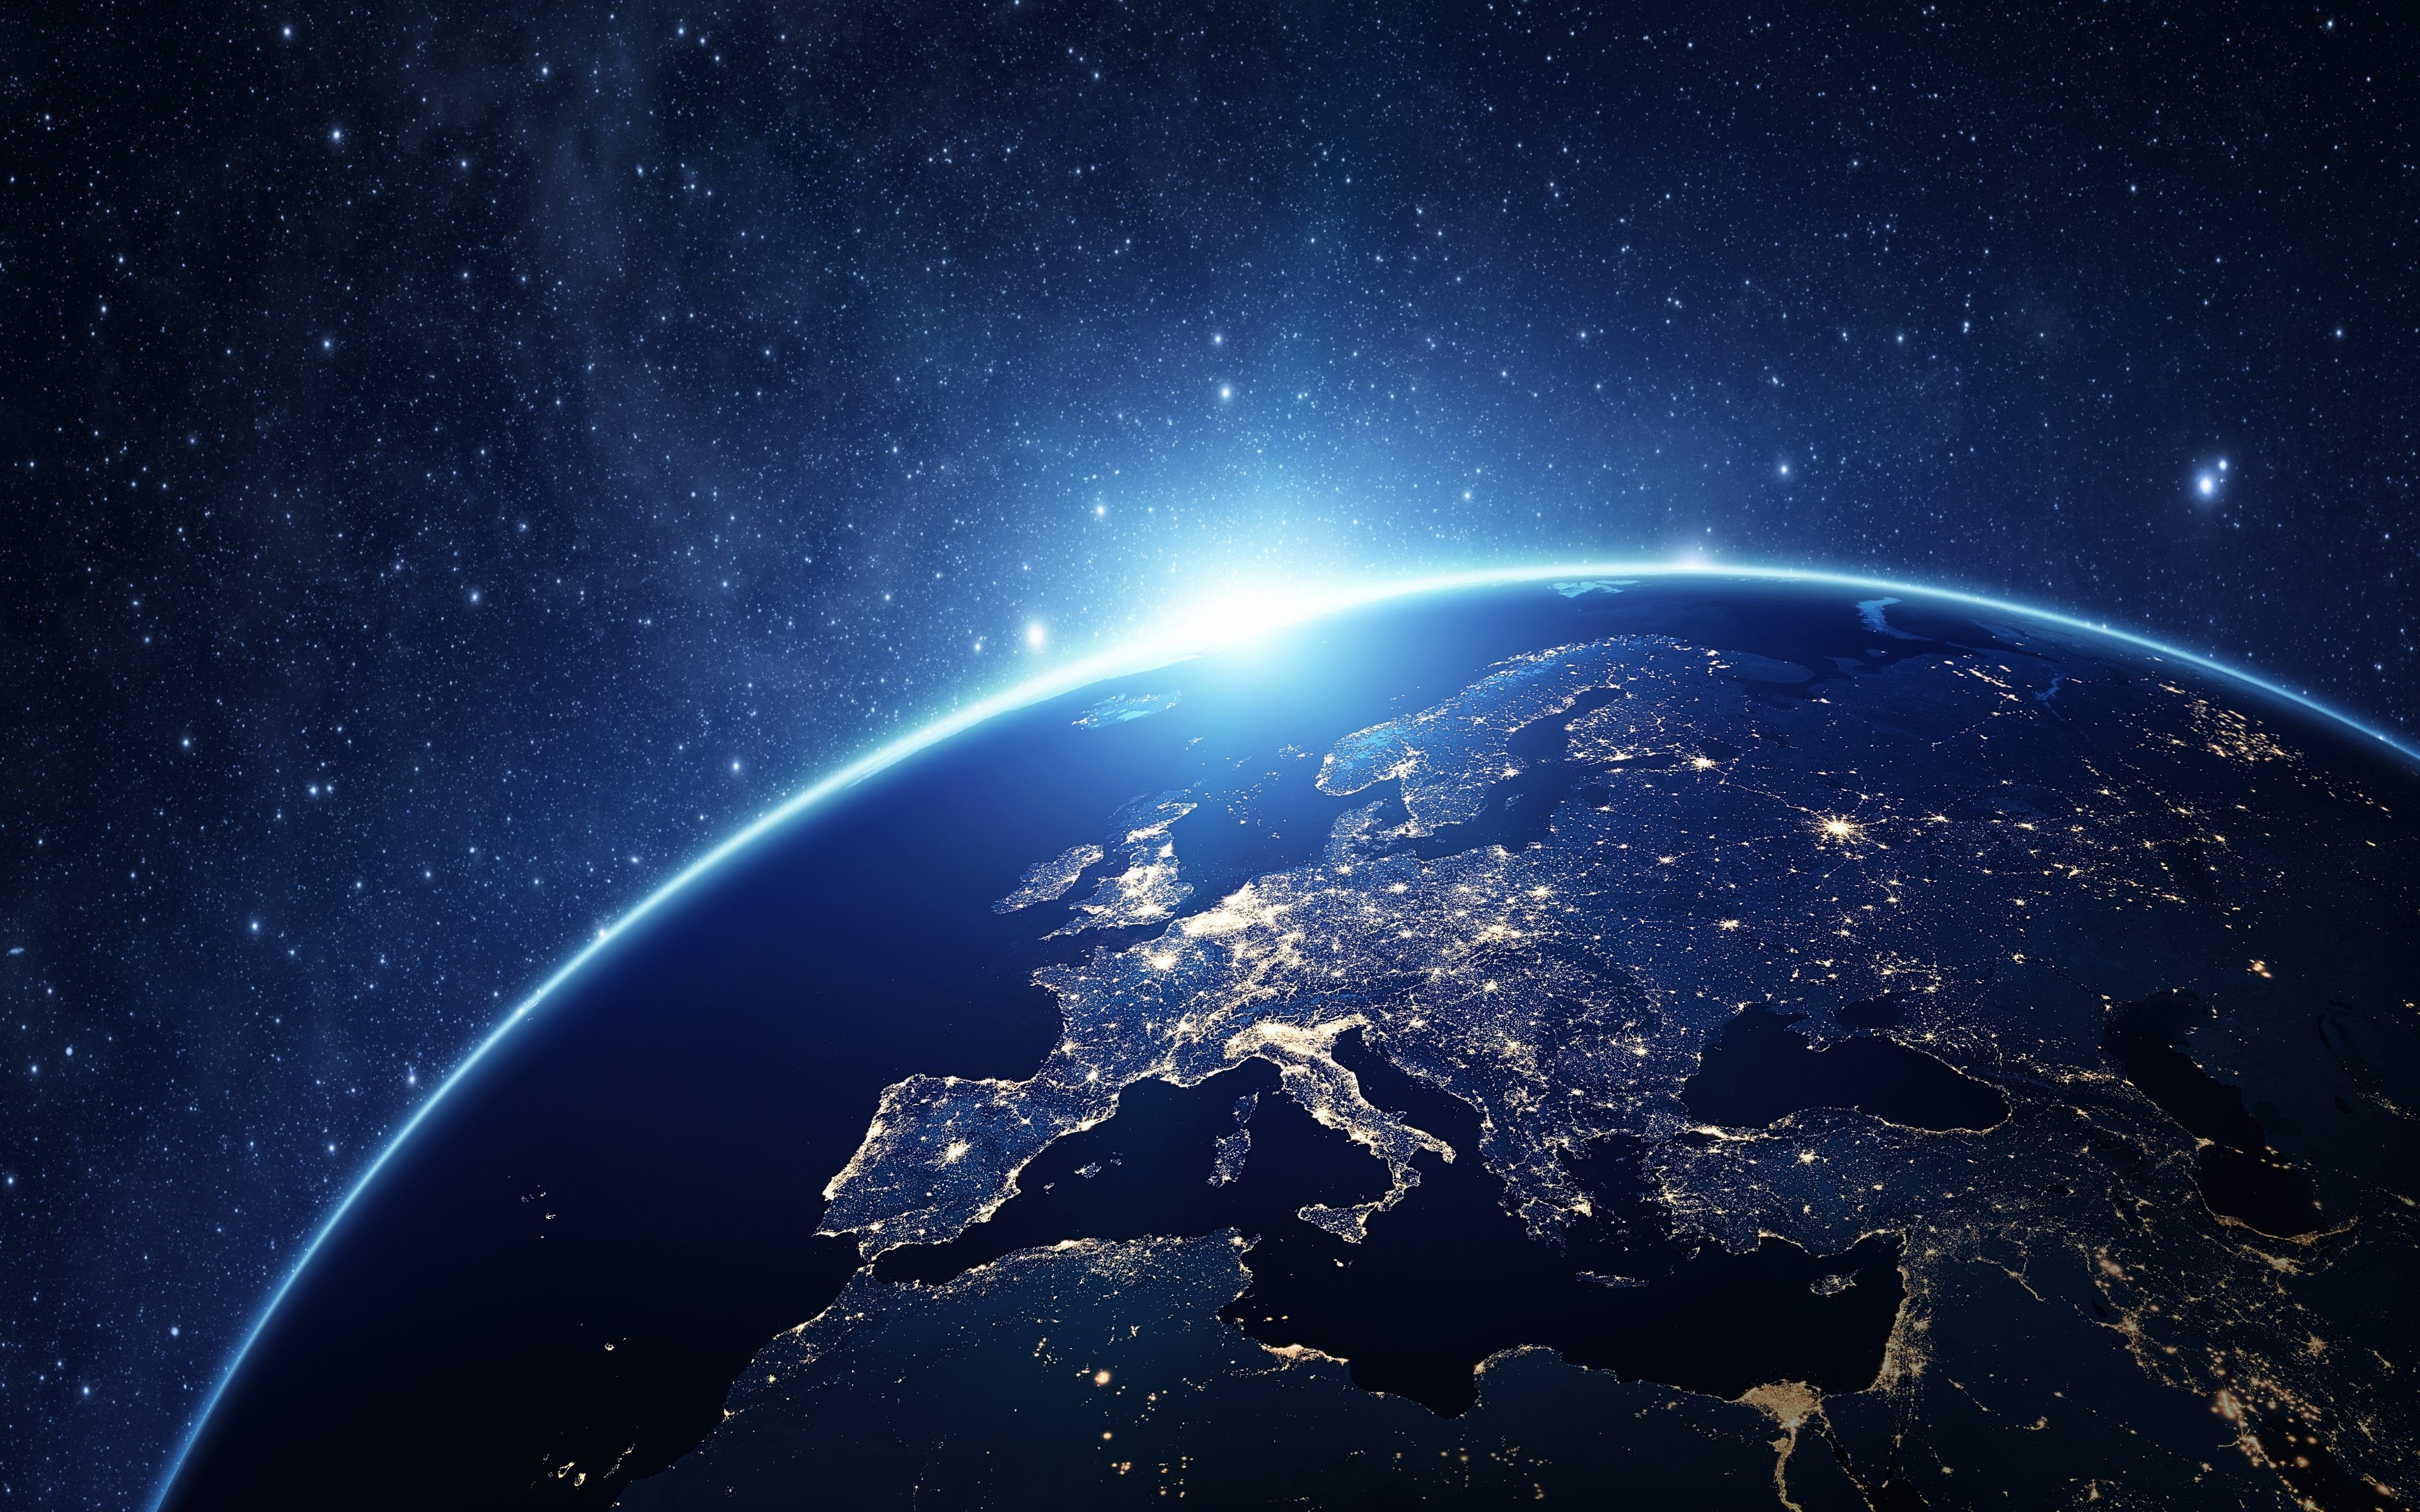 Earth View From Space 4K Wallpaper To See Earth From Space